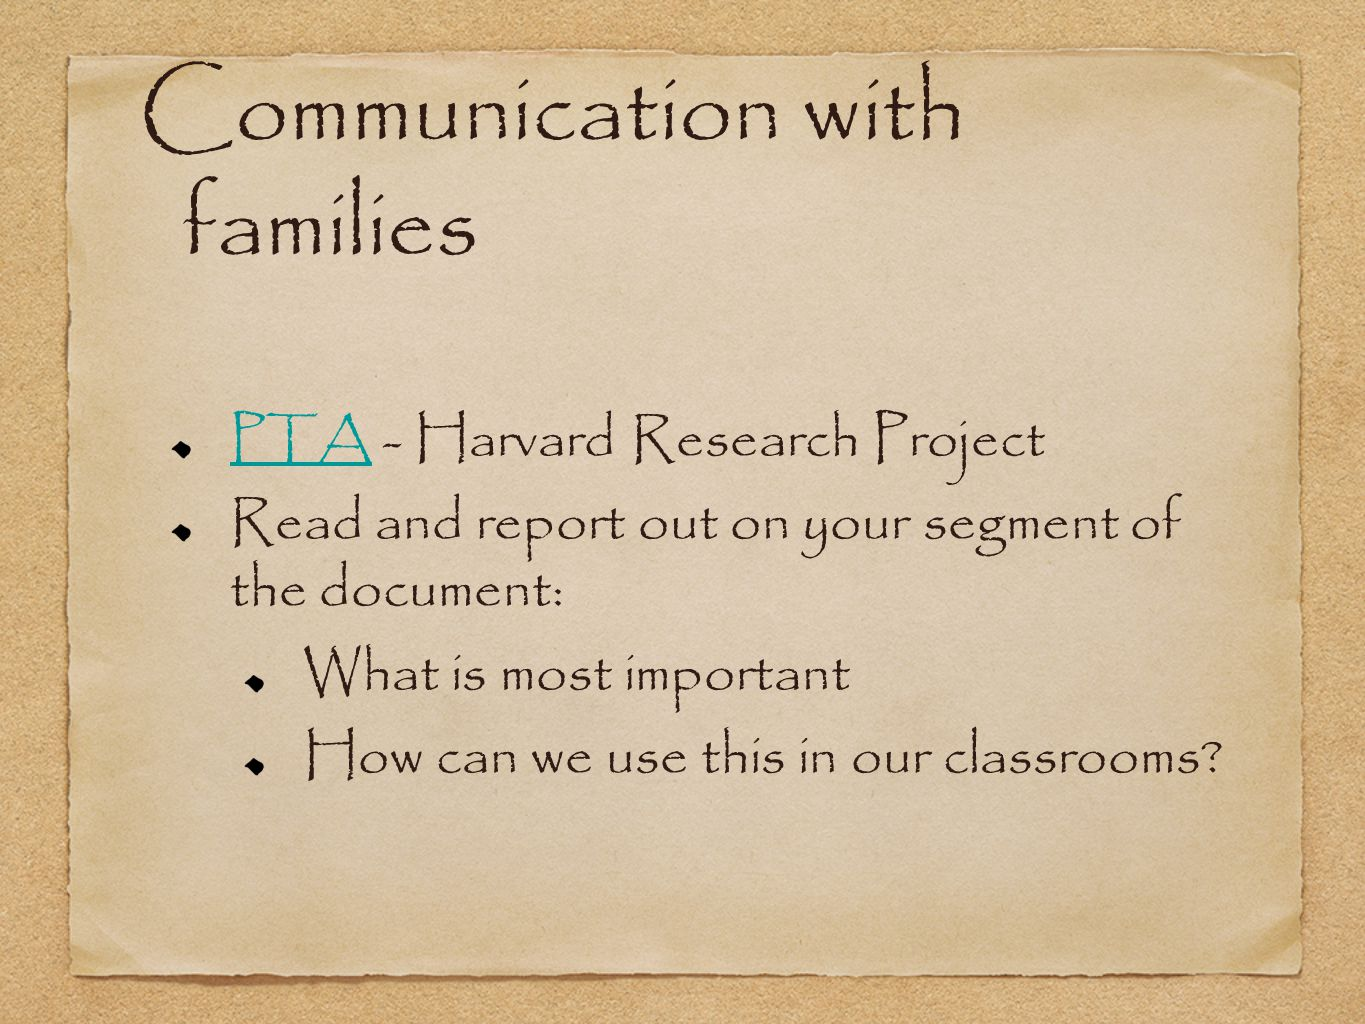 Communication with families PTA PTA - Harvard Research Project Read and report out on your segment of the document: What is most important How can we use this in our classrooms